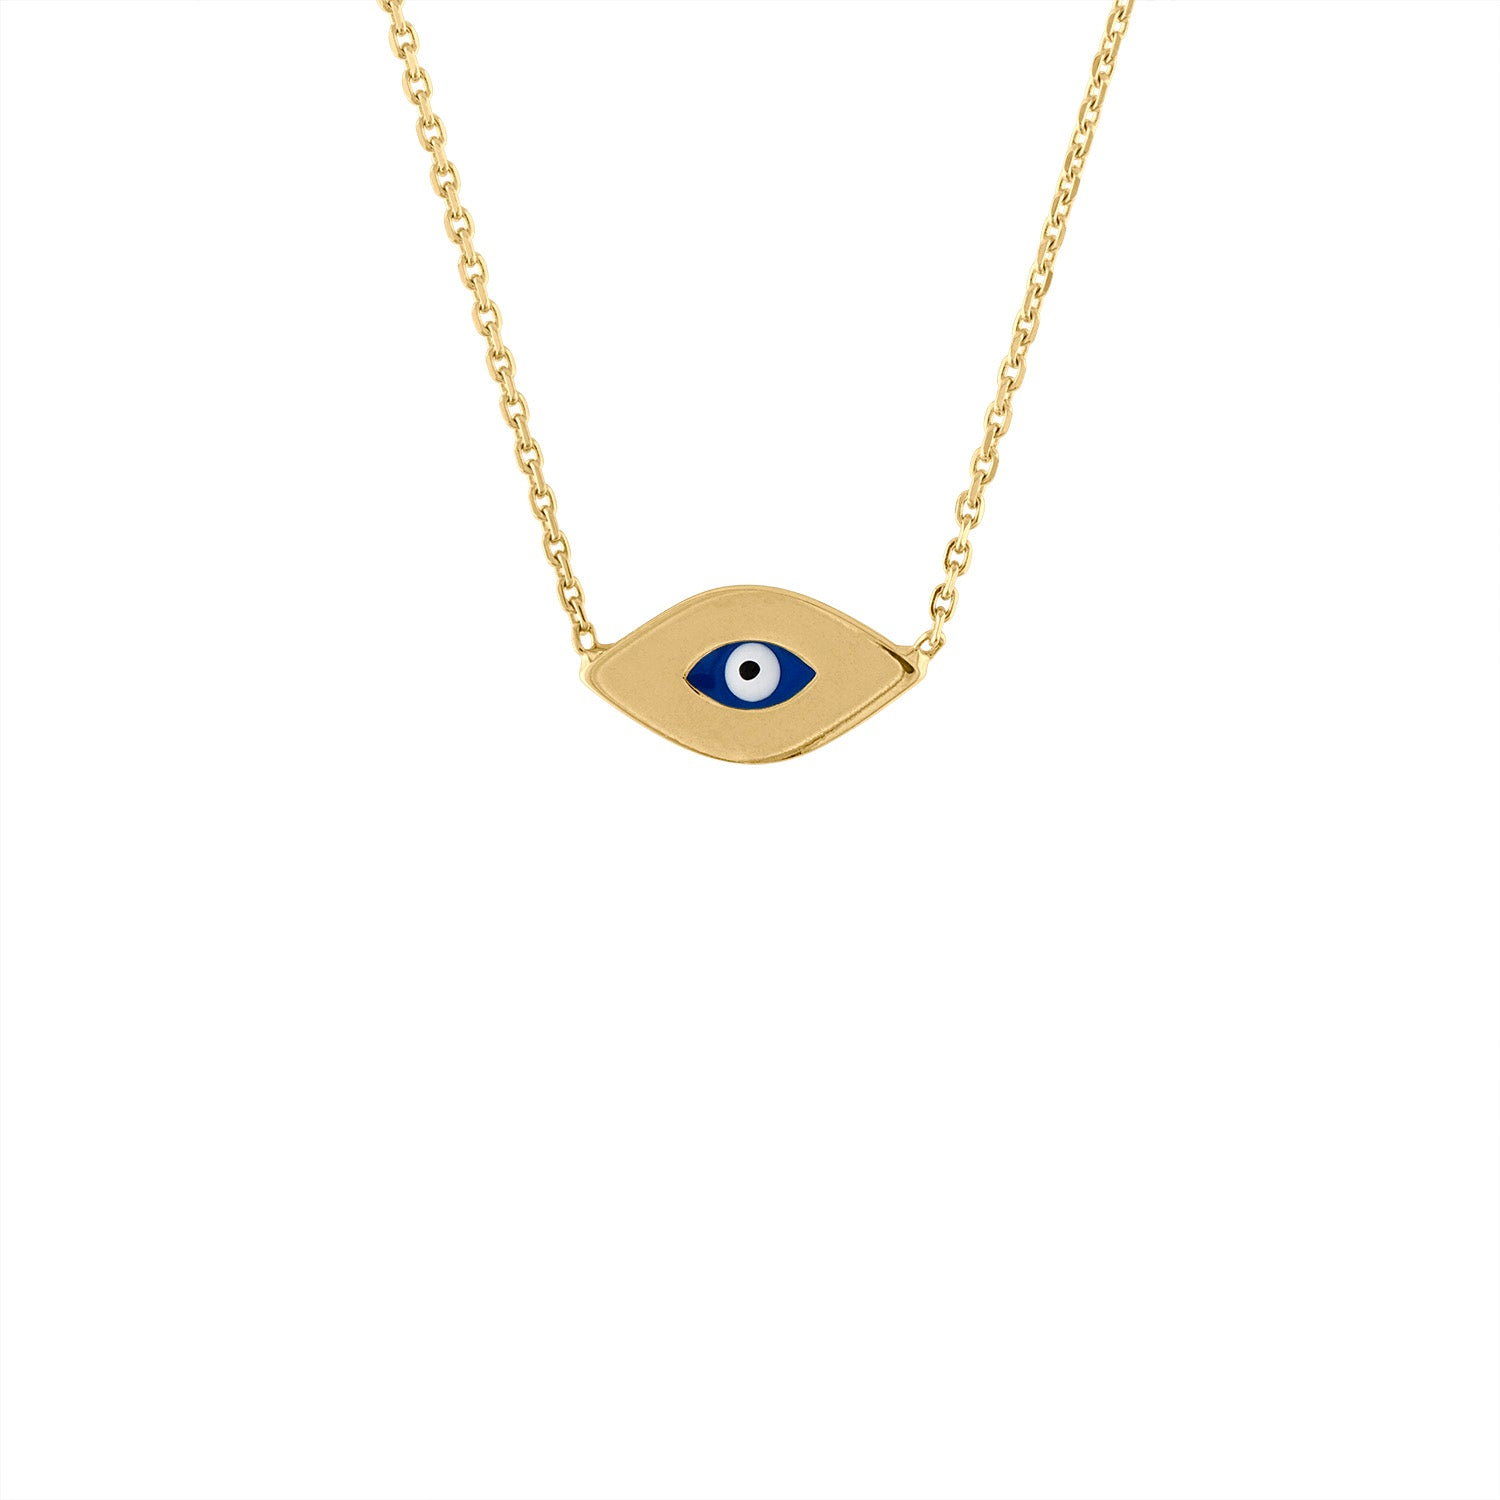 14KT GOLD EVIL EYE NECKLACE